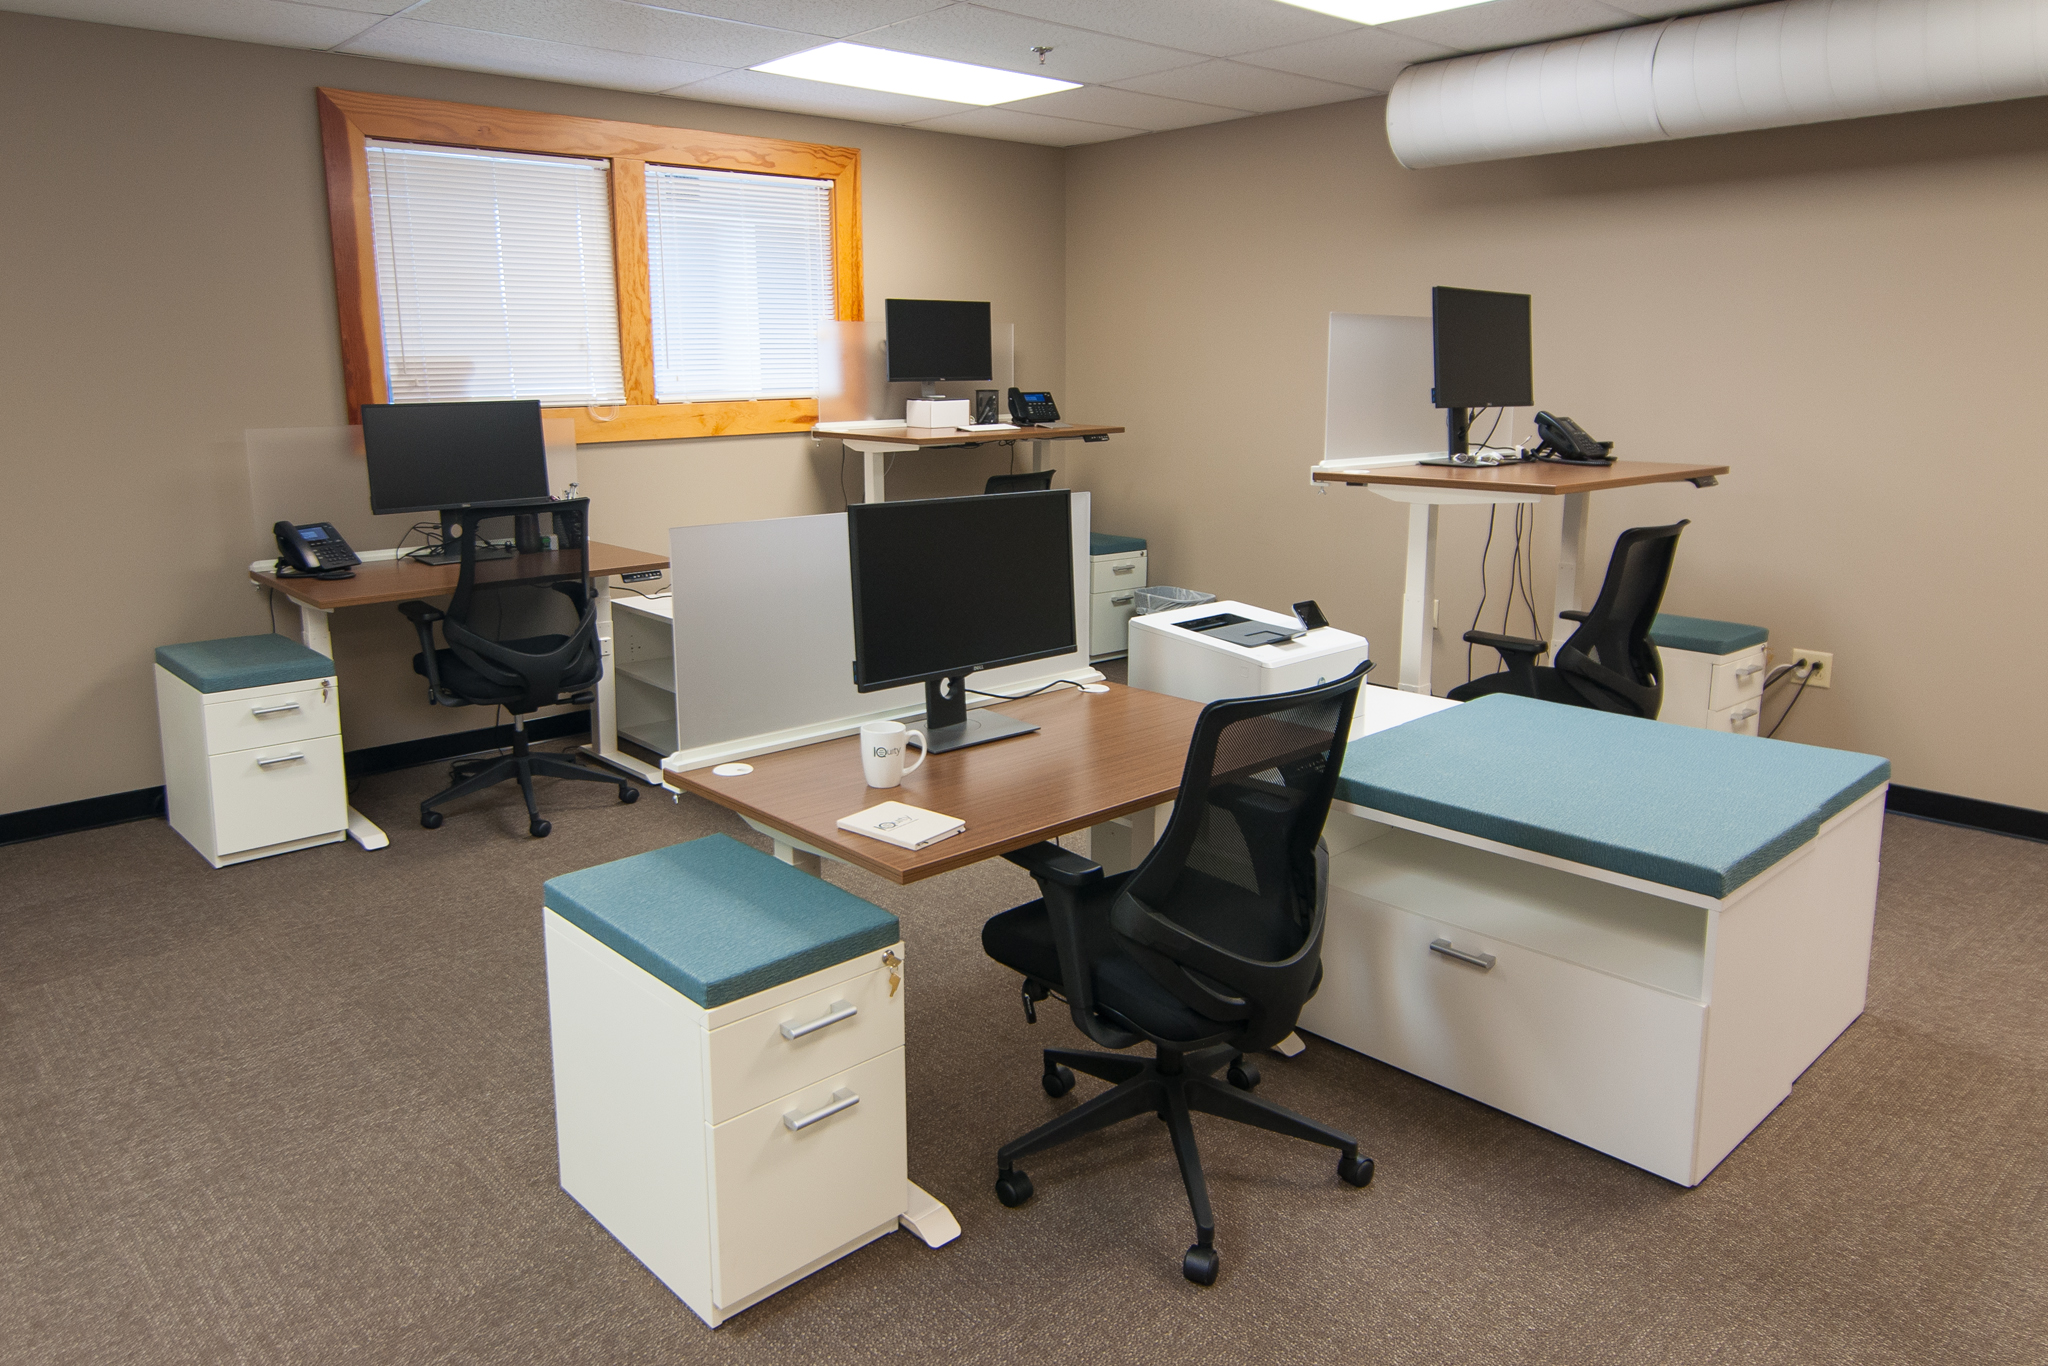 FPI-Iquity install_0014 workstations c.jpg